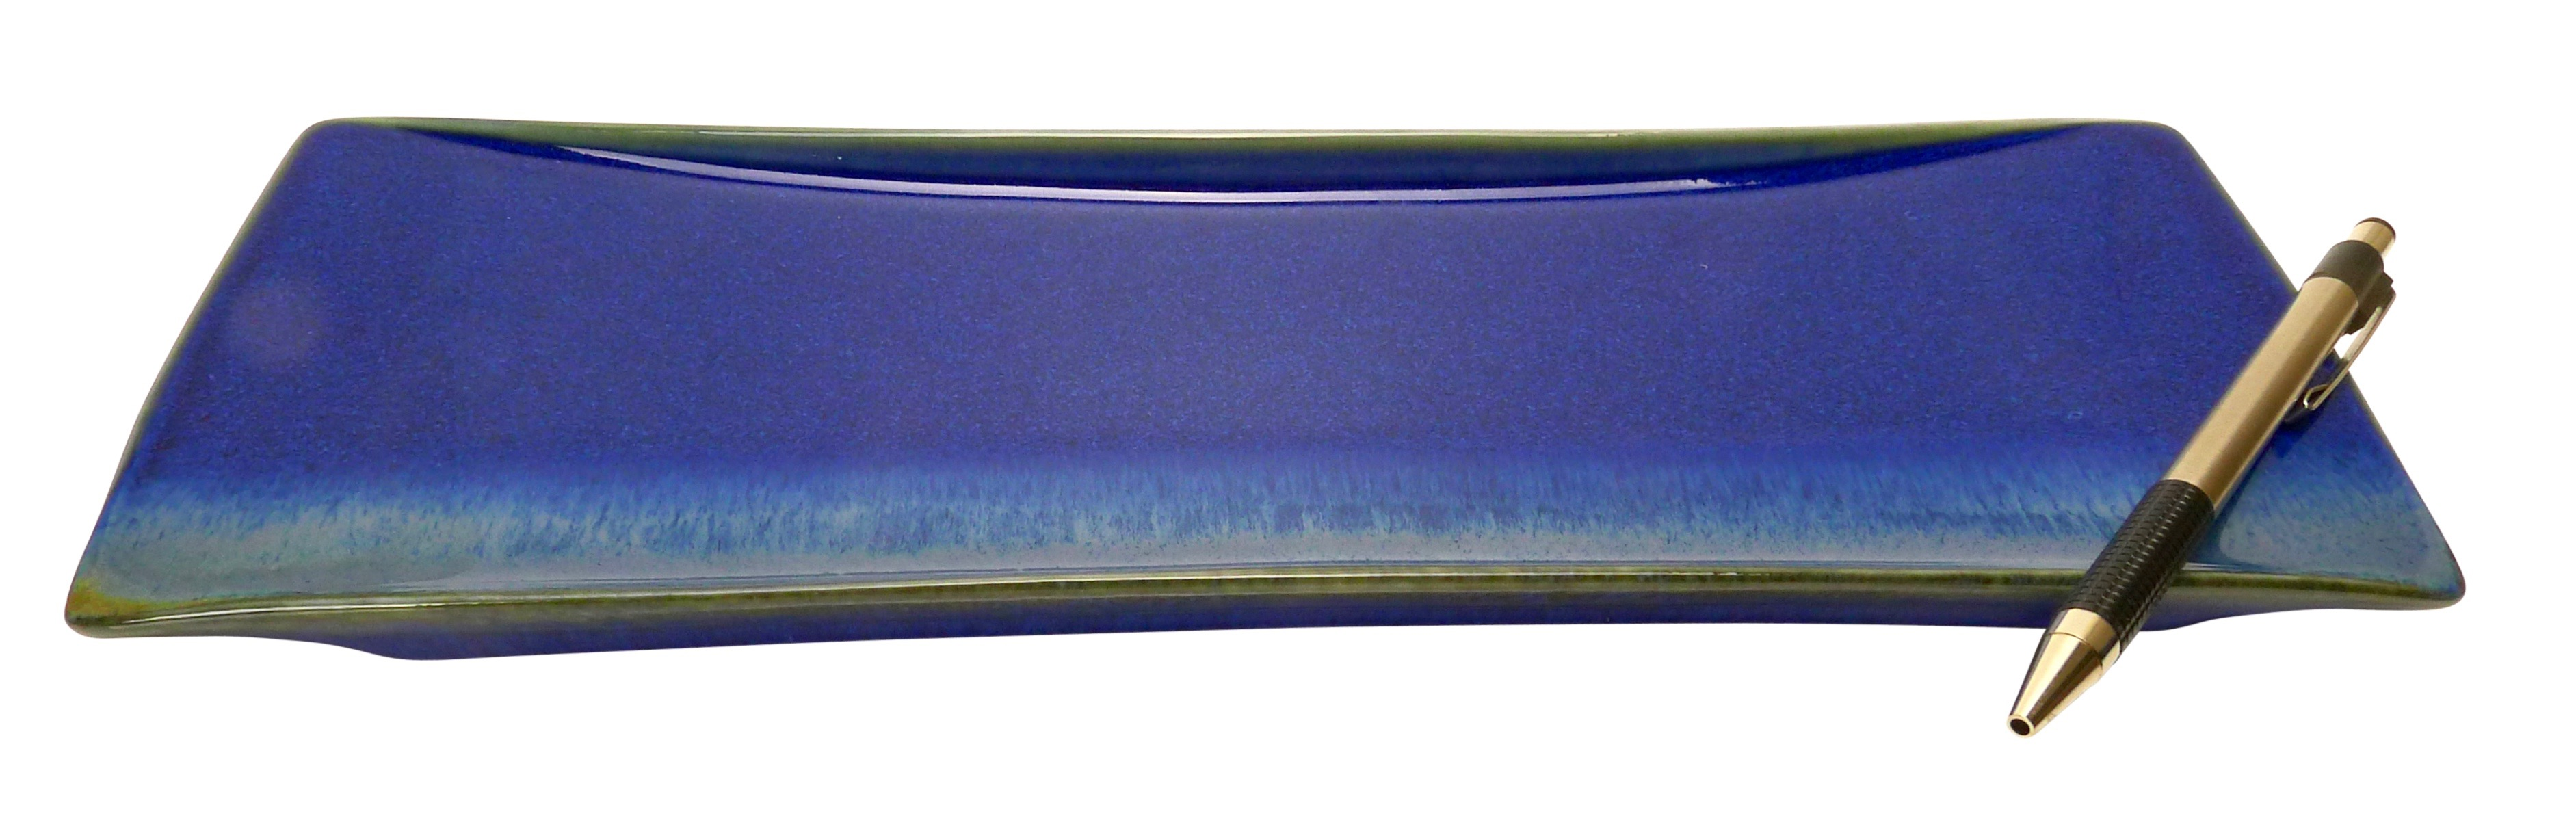 Image of Handmade Porcelain Rectangle plate 11x3-Inch, Deep Cobalt Blue